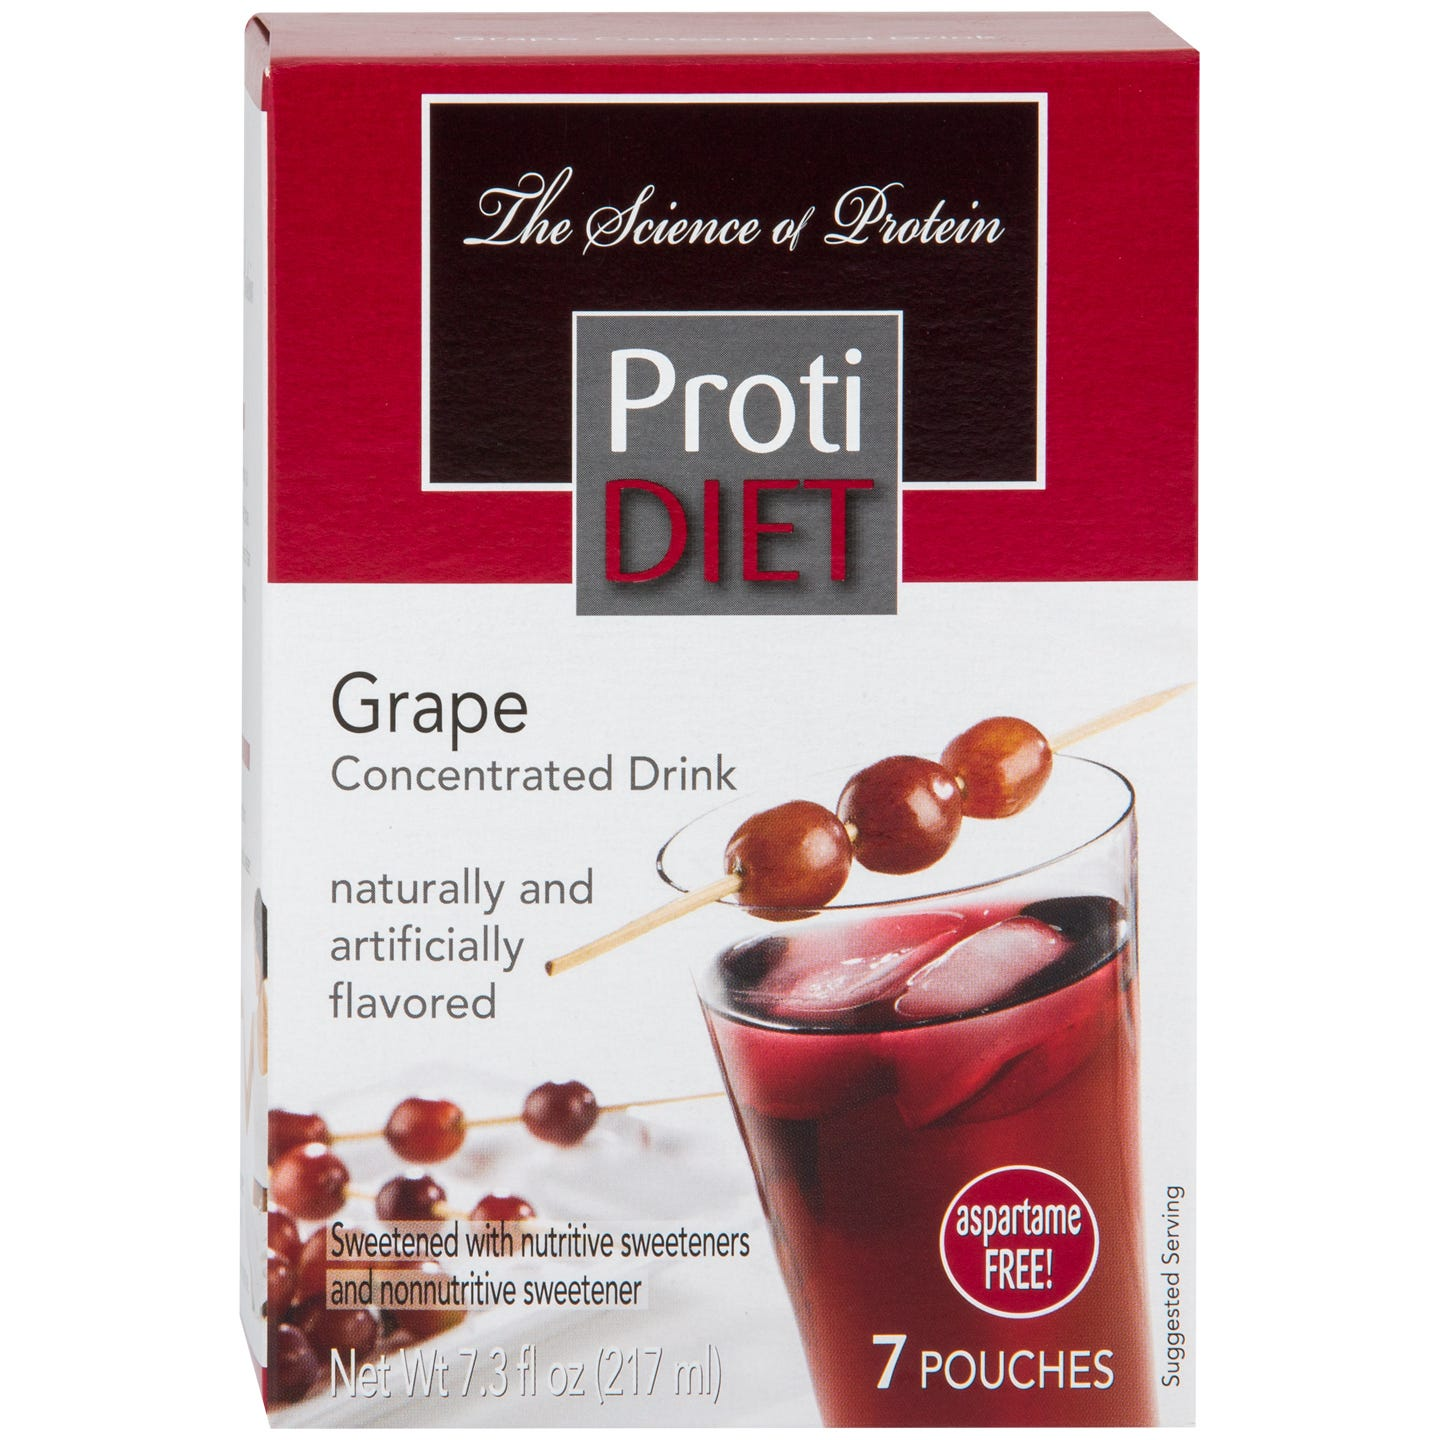 Protein Fruit Drink Concentrate Grape (7 Ct) - ProtiDiet